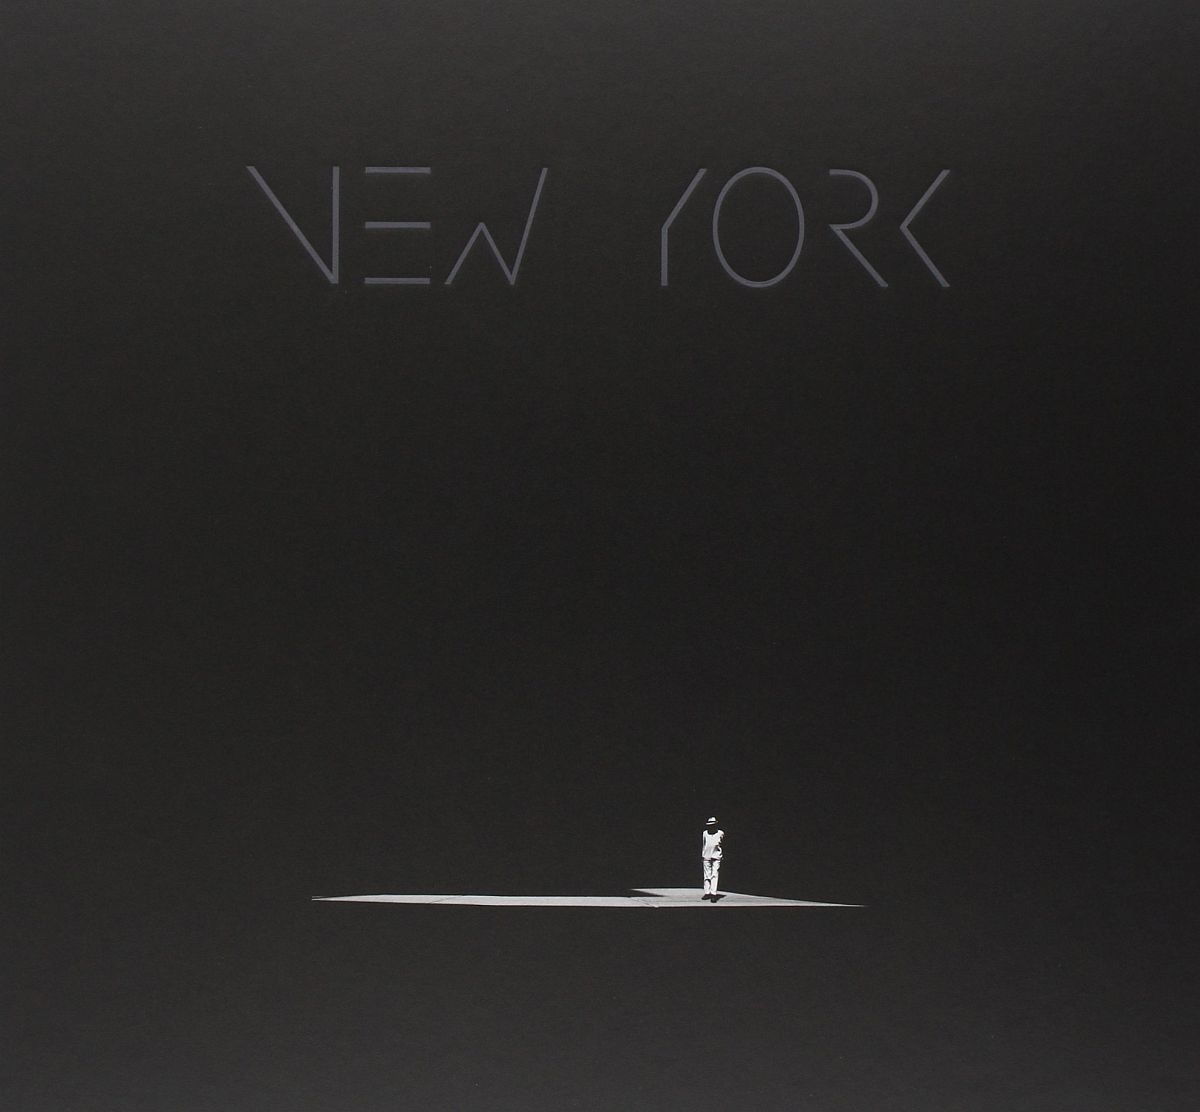 Gabriele Croppi - New York: Metaphysics of the Urban Landscape